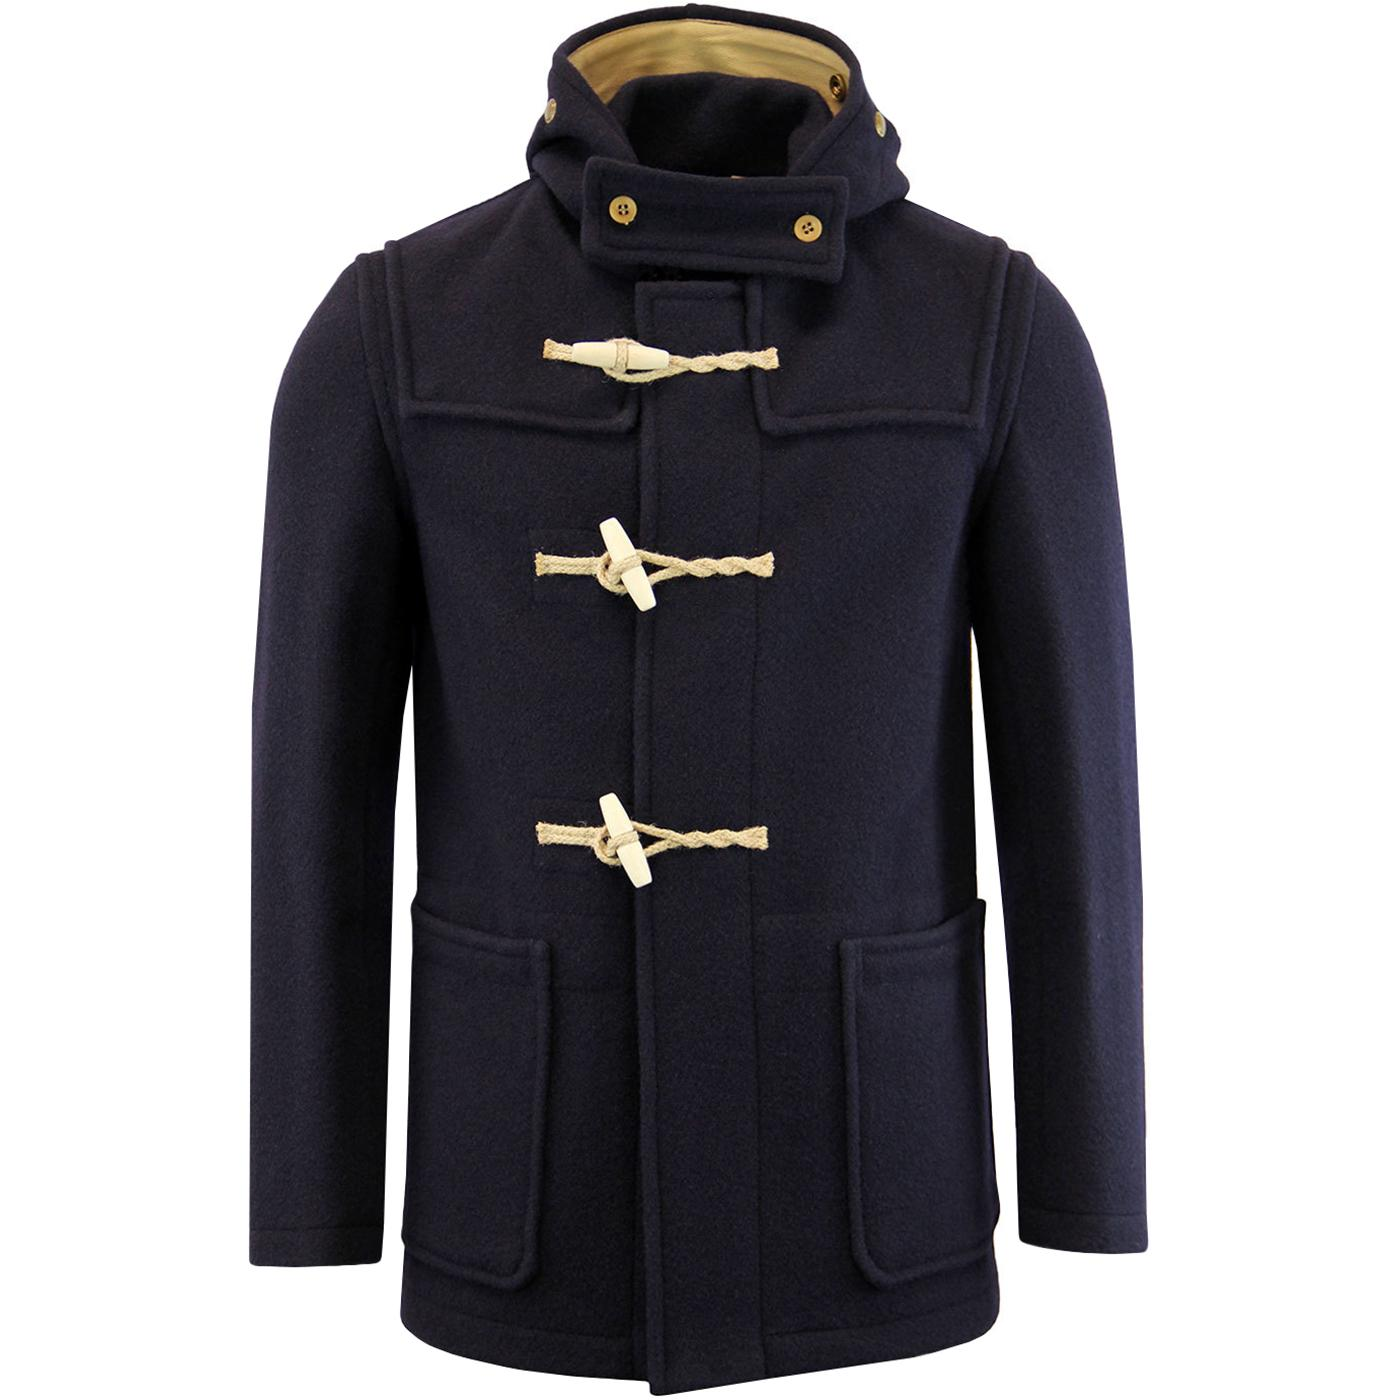 GLOVERALL Mid Monty Retro 1960s Mod Wool Blend Duffle Coat Navy